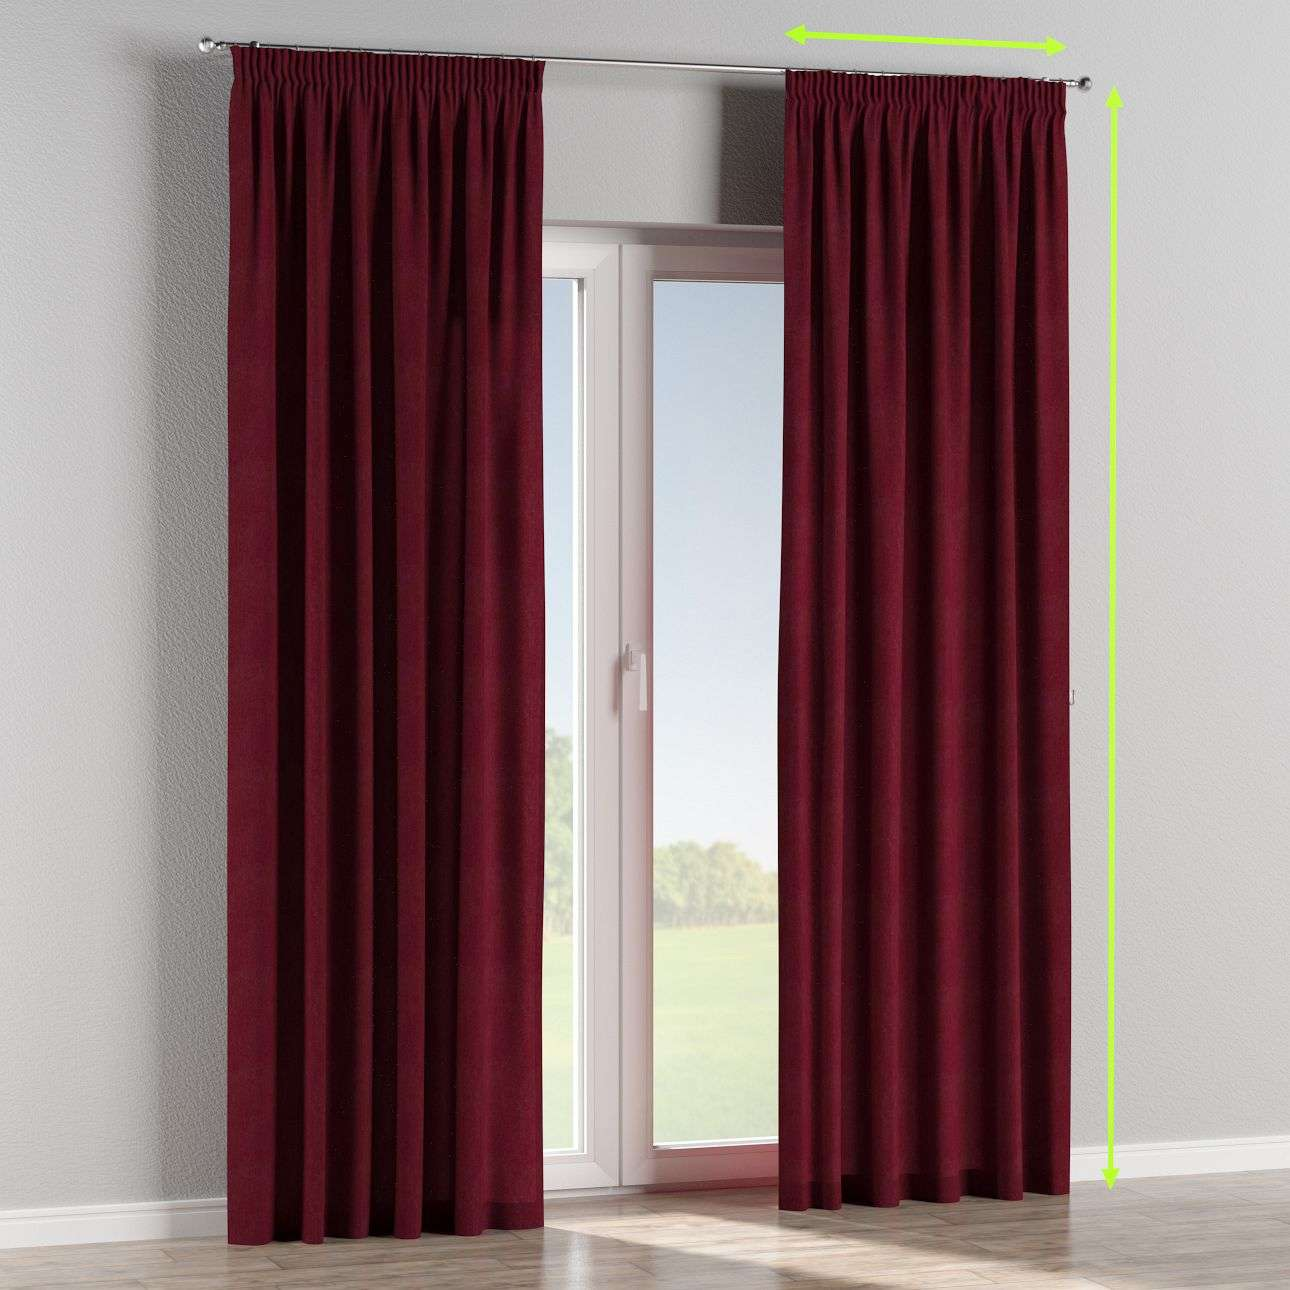 Pencil pleat lined curtains in collection Chenille, fabric: 702-19